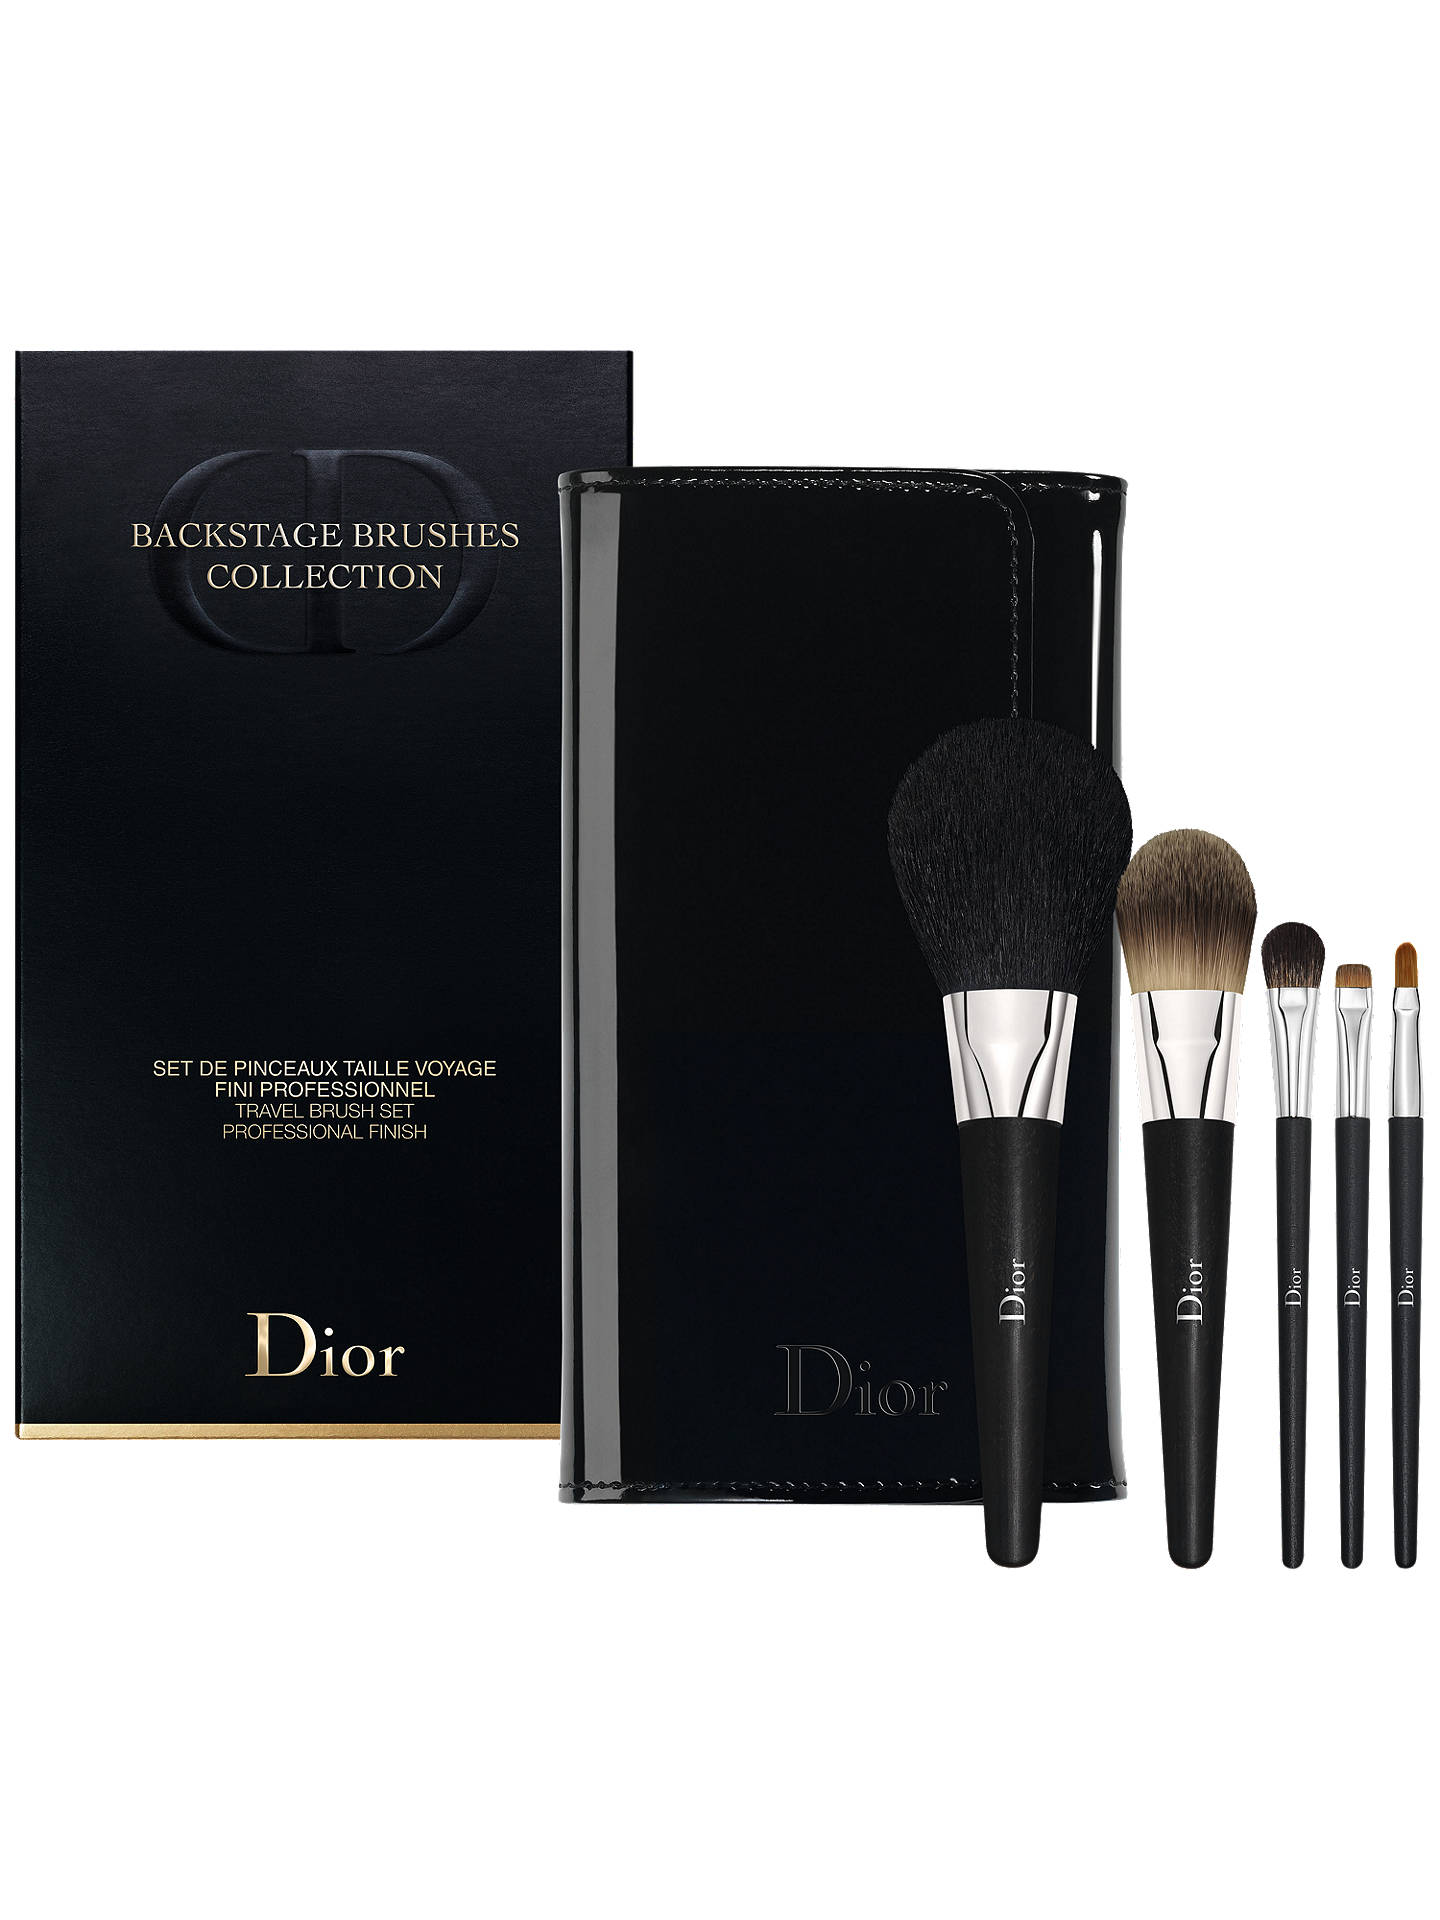 cb2a28b5 Dior Backstage Brushes Gift Set at John Lewis & Partners